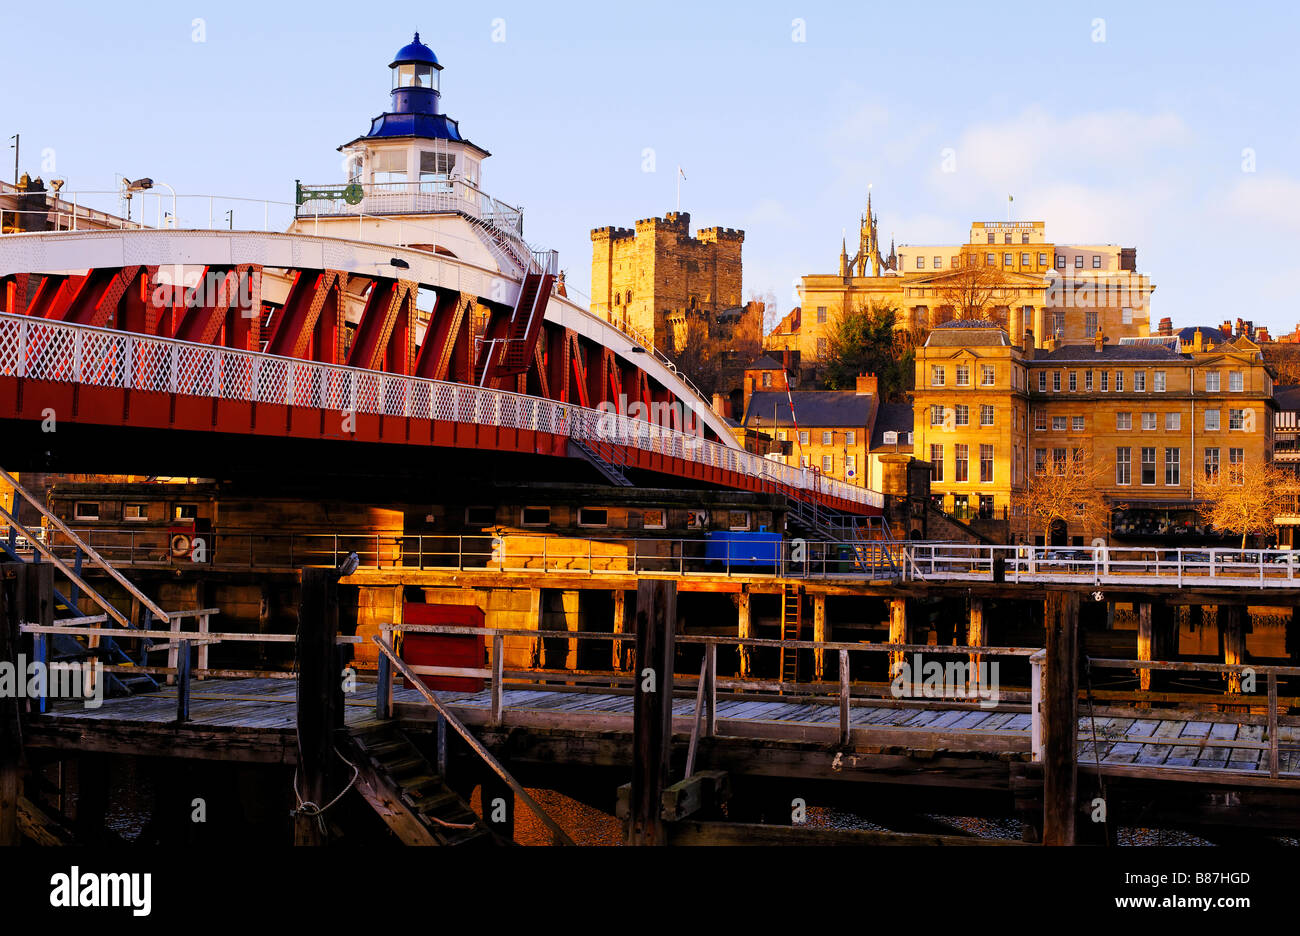 Swing Bridge and Castle Keep Newcastle-upon-Tyne  viewed from the Gateshead bank of the river Tyne - Stock Image